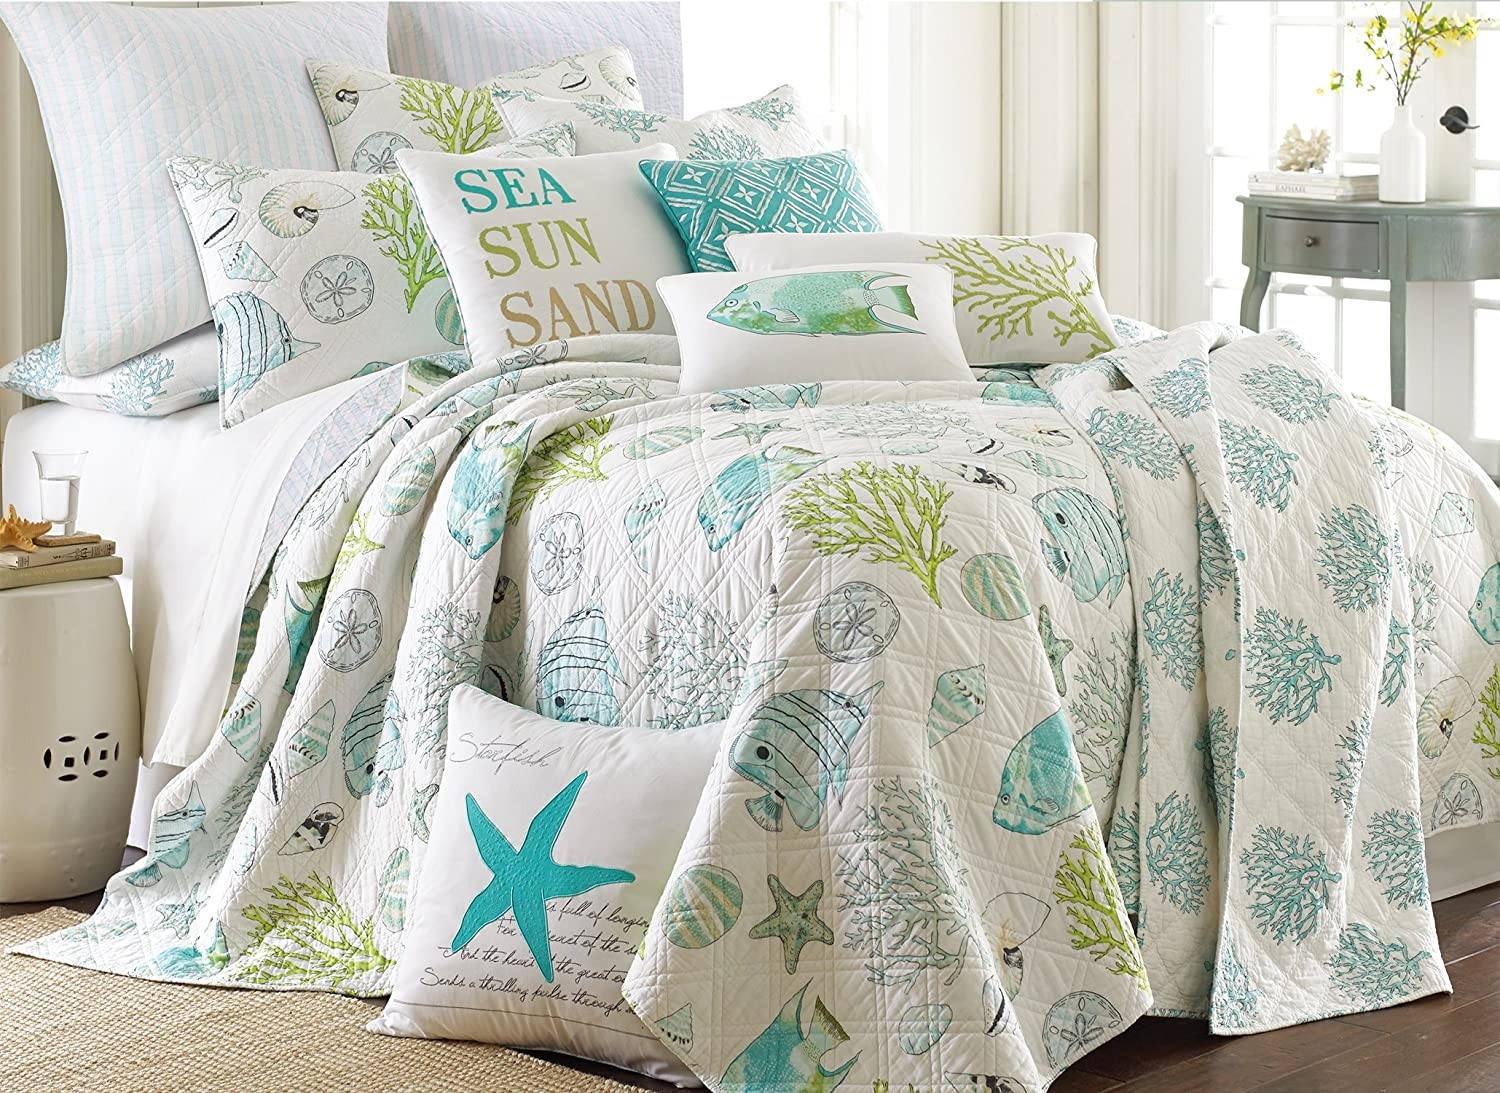 Amazon.com: Biscayne King Quilt Set Aqua Coastal: Home & Kitchen : aqua king quilt - Adamdwight.com